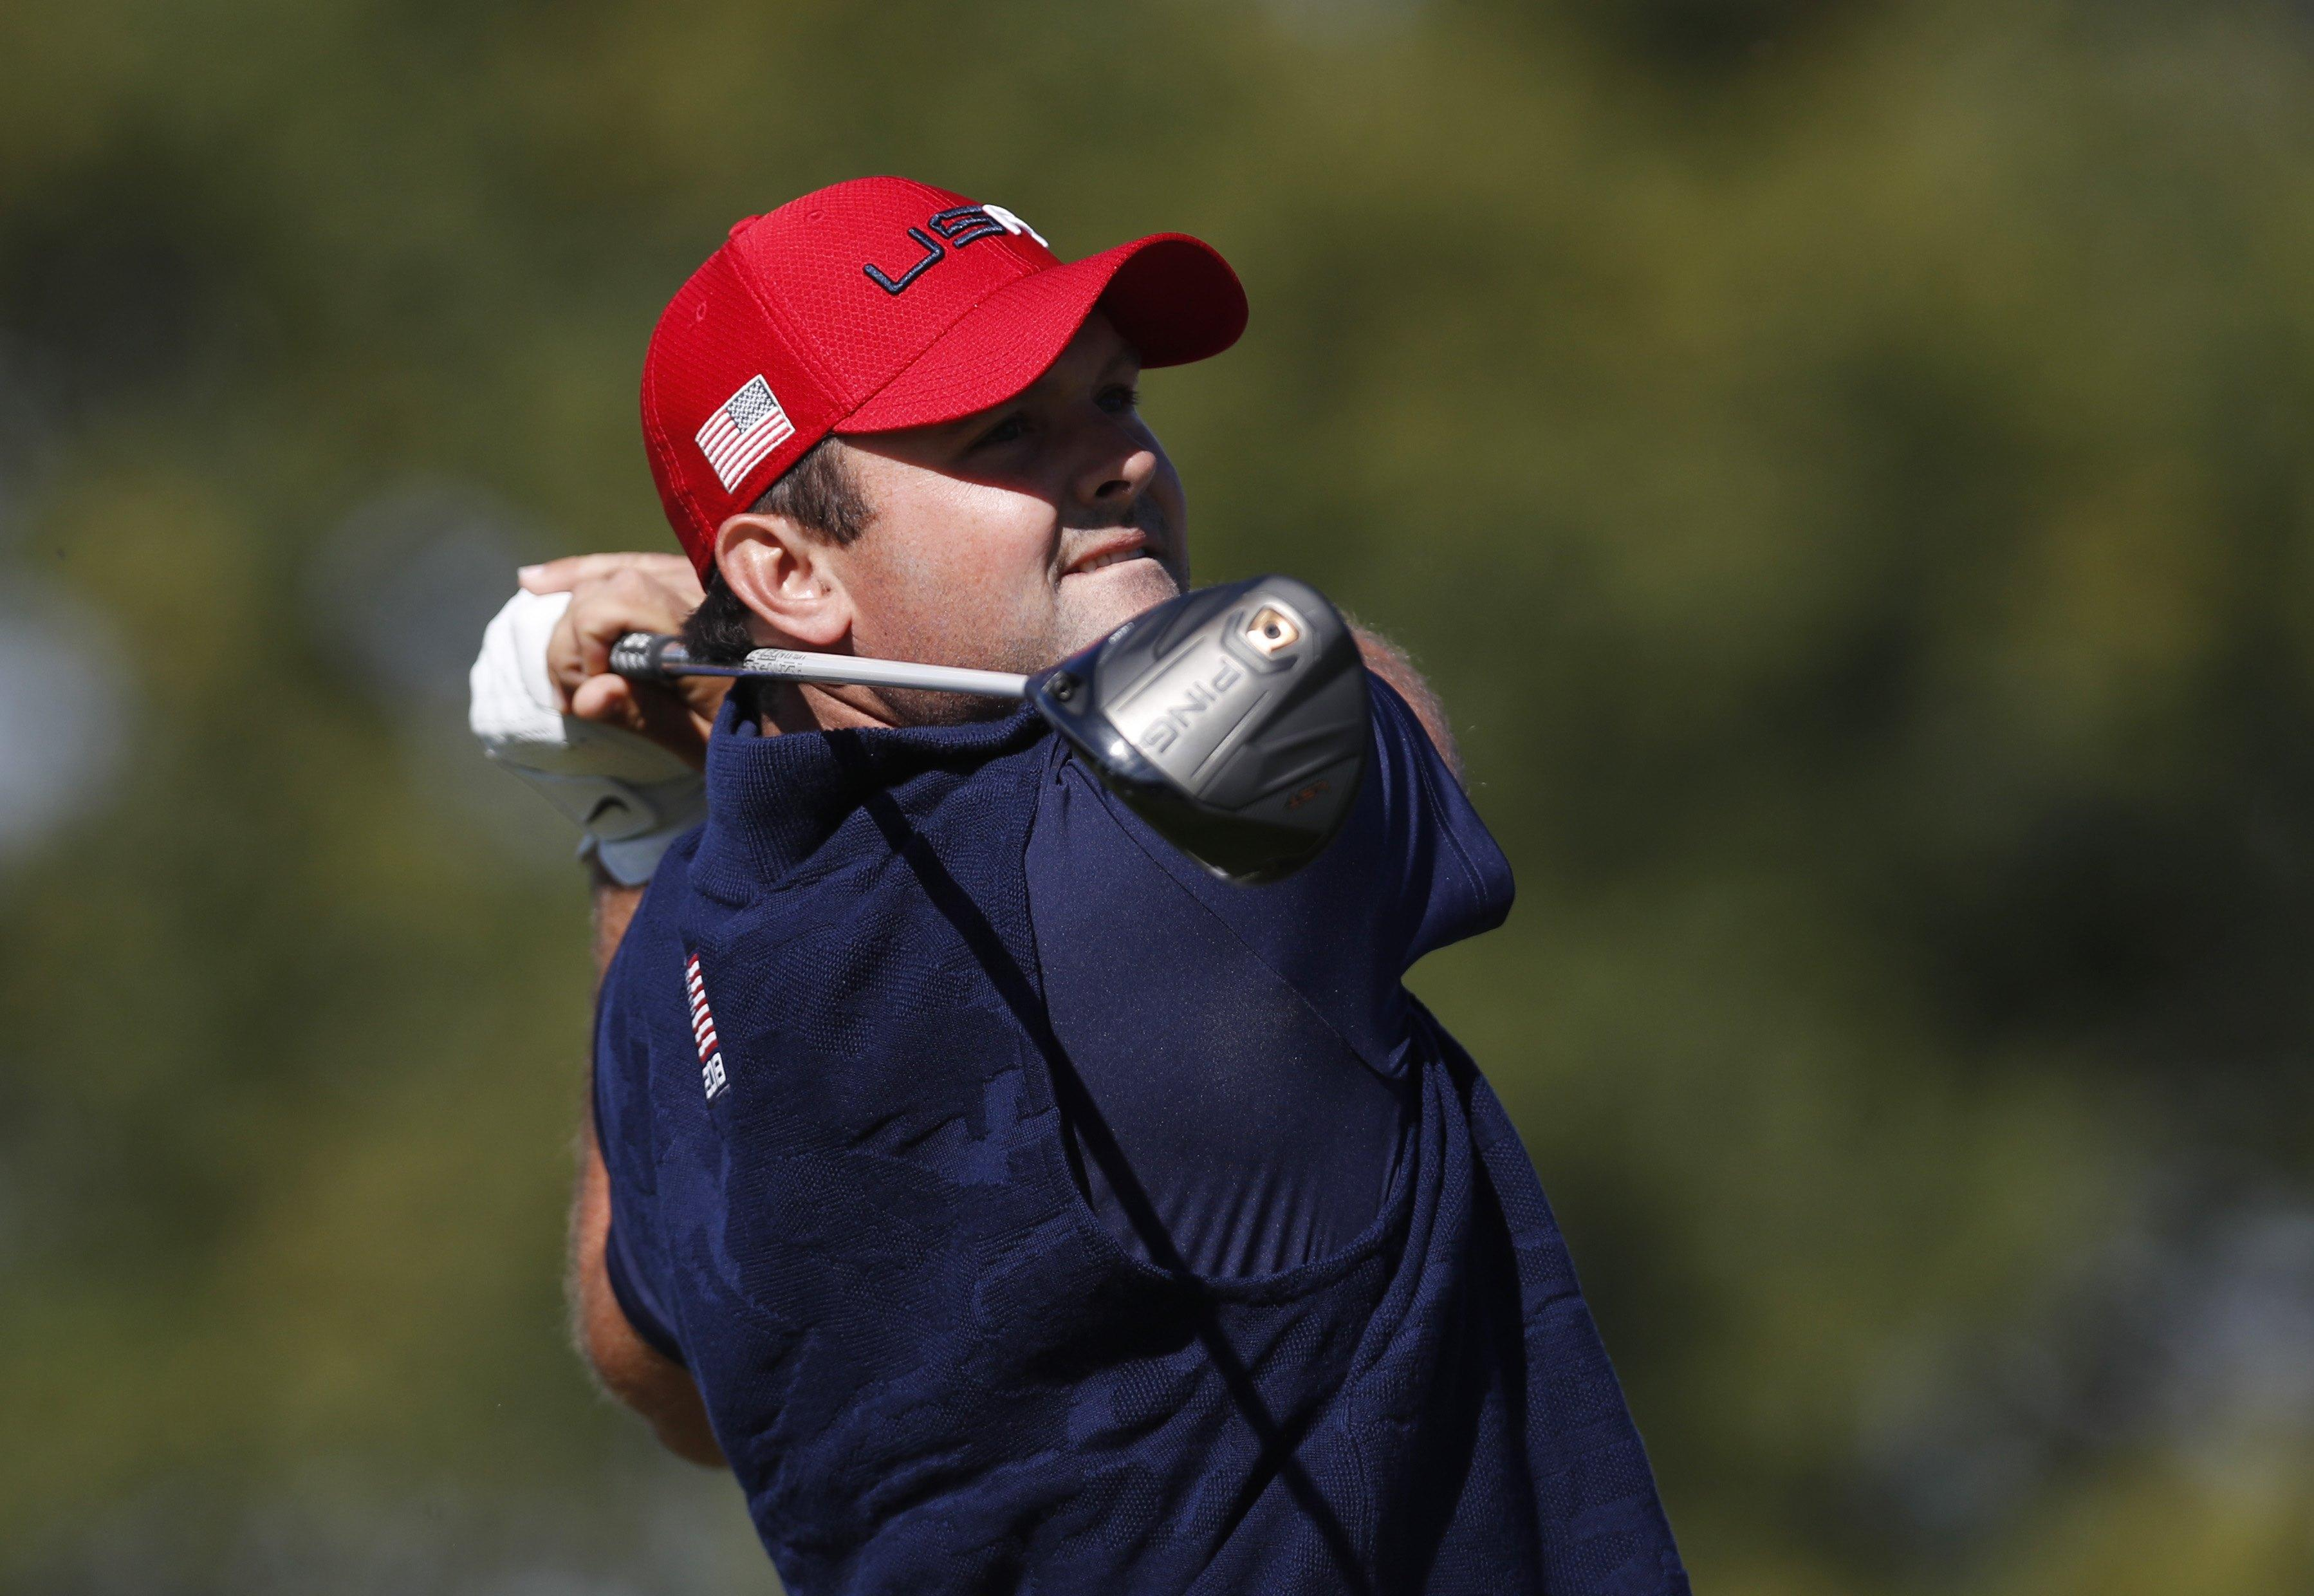 Patrick Reed has taken a huge swing at Jordan Spieth and Jim Furyk